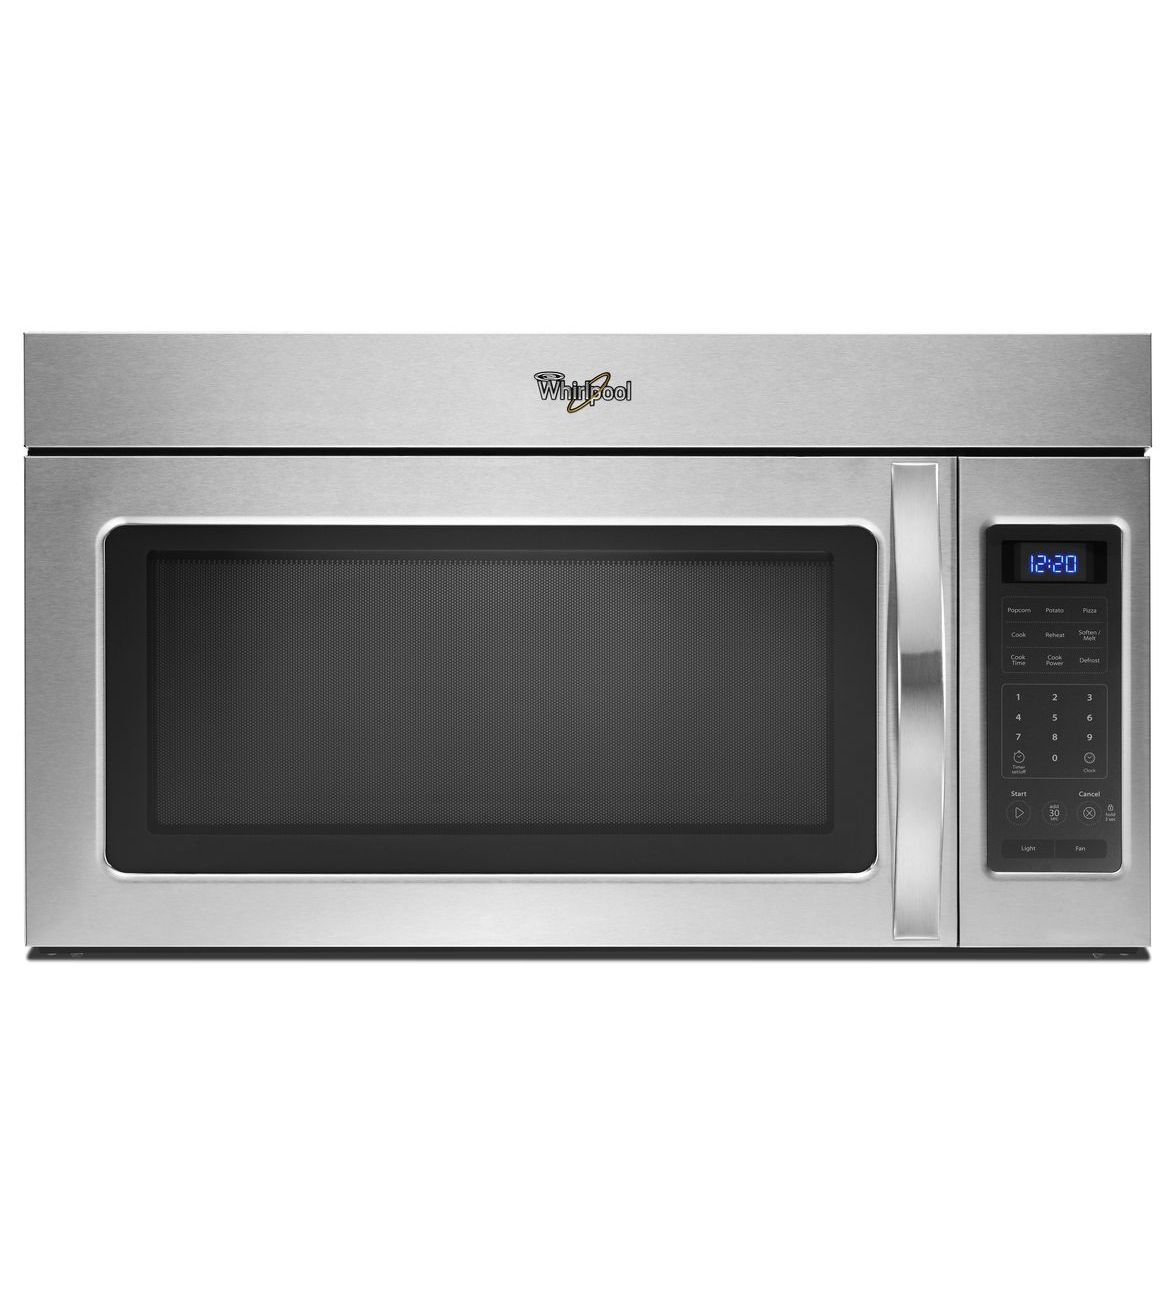 Whirlpool white ice microwave dimensions - Over The Range Microwave With Hidden Vent Wmh31017as Stainless Steel